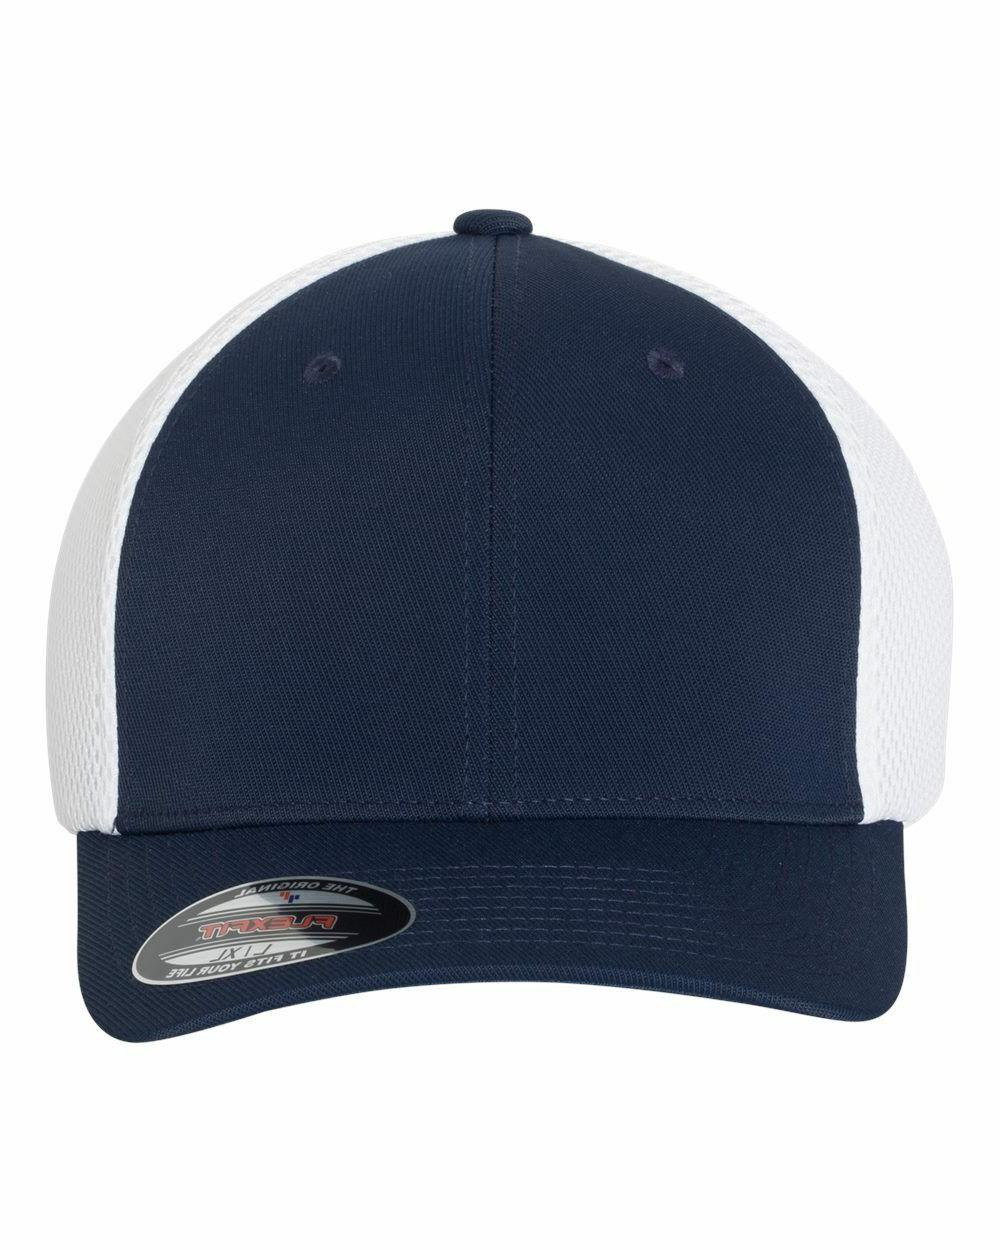 FLEXFIT 6533 Ultrafiber Cap with Air Fitted Trucker S/M